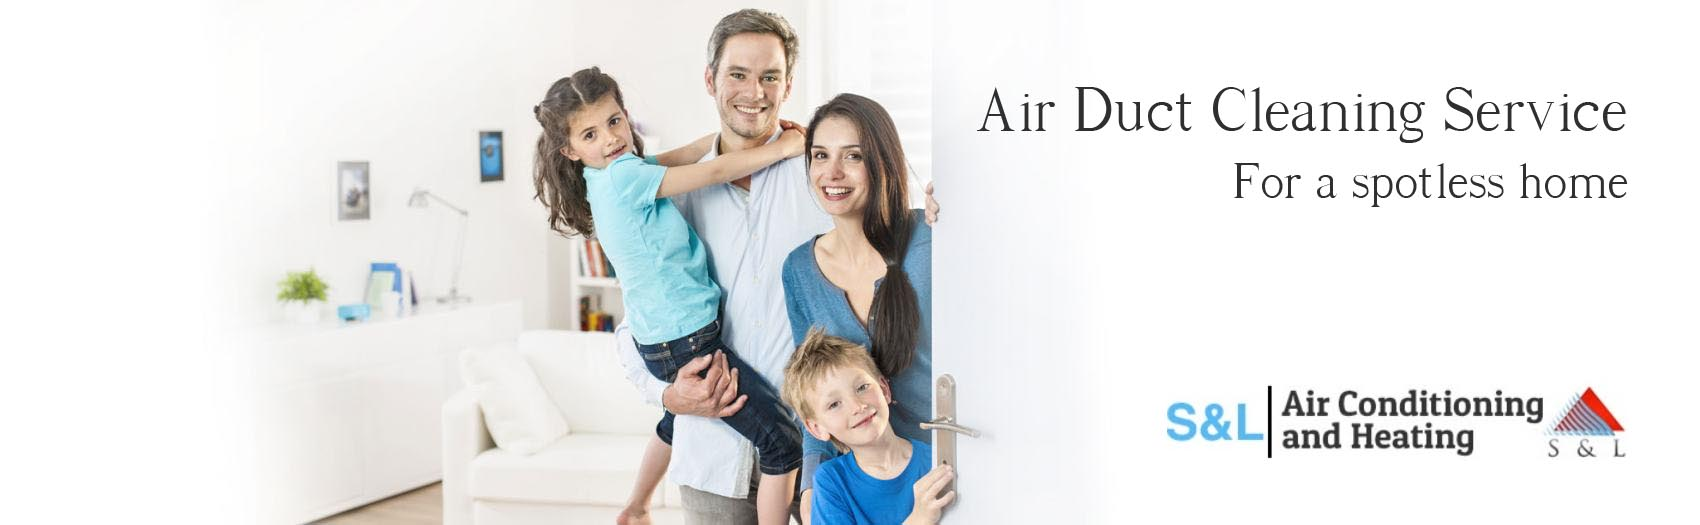 duct-cleaning-spotless-home